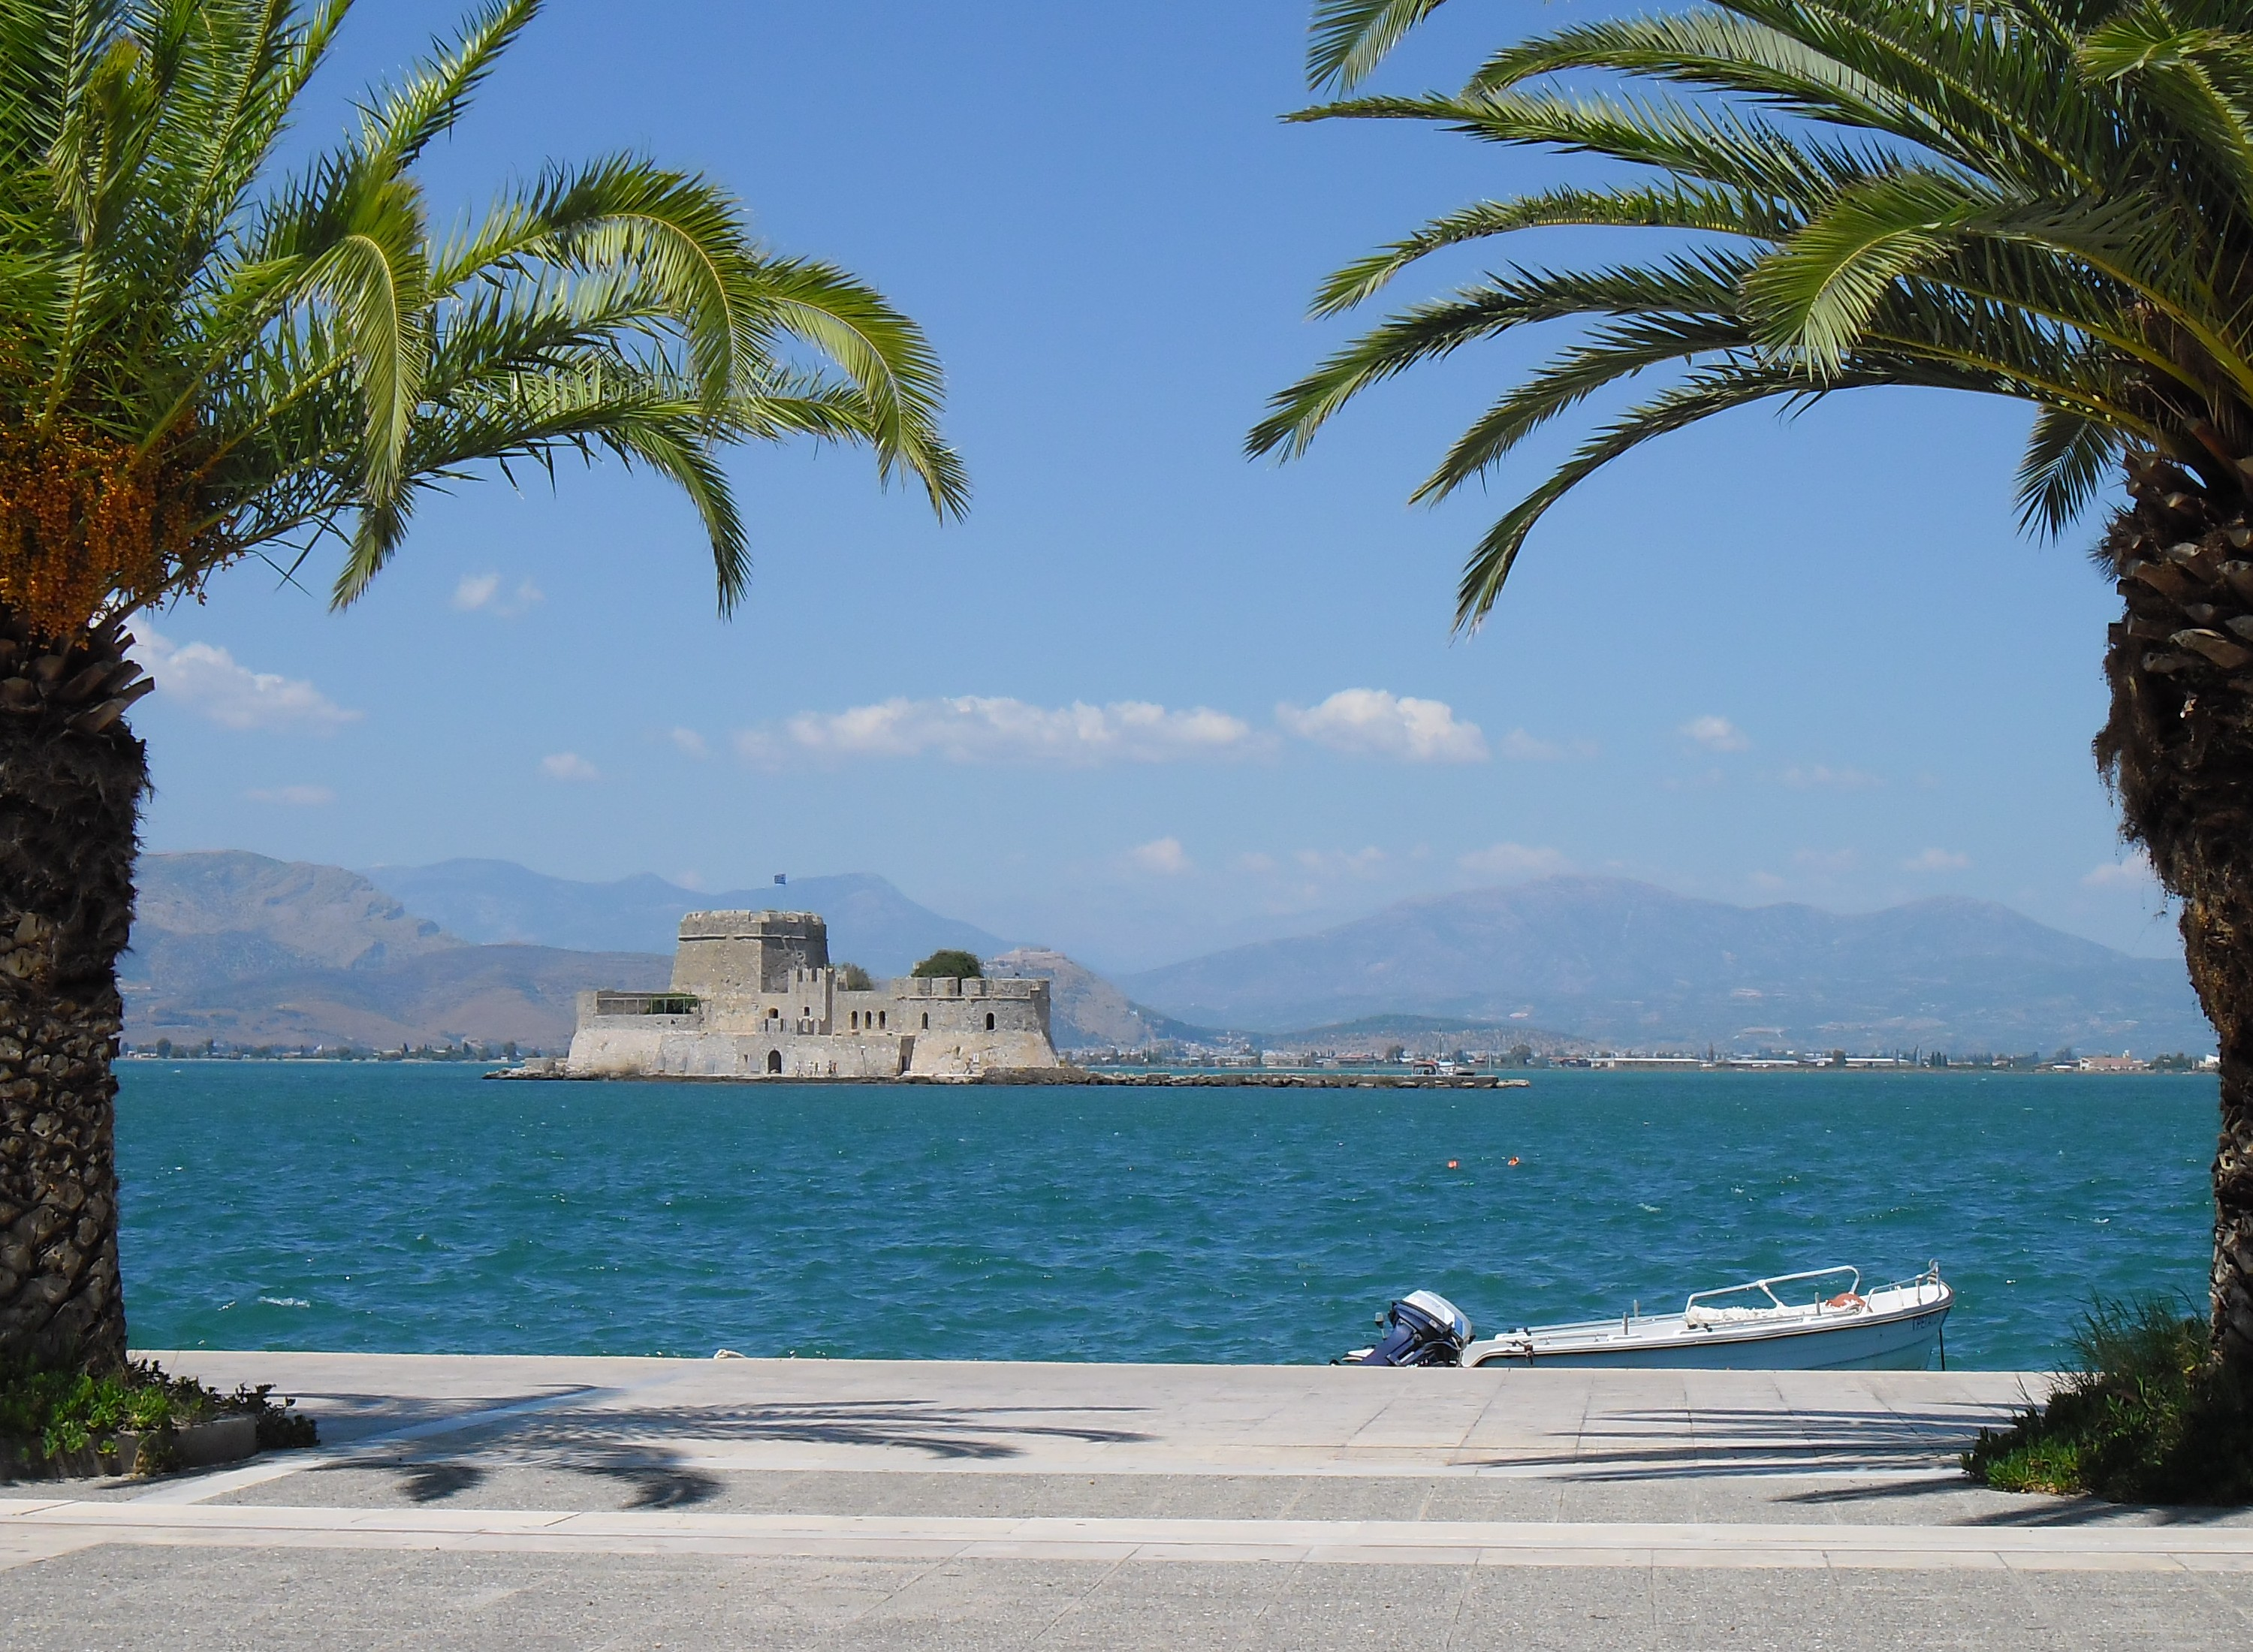 The Bourtzi, Nafplio